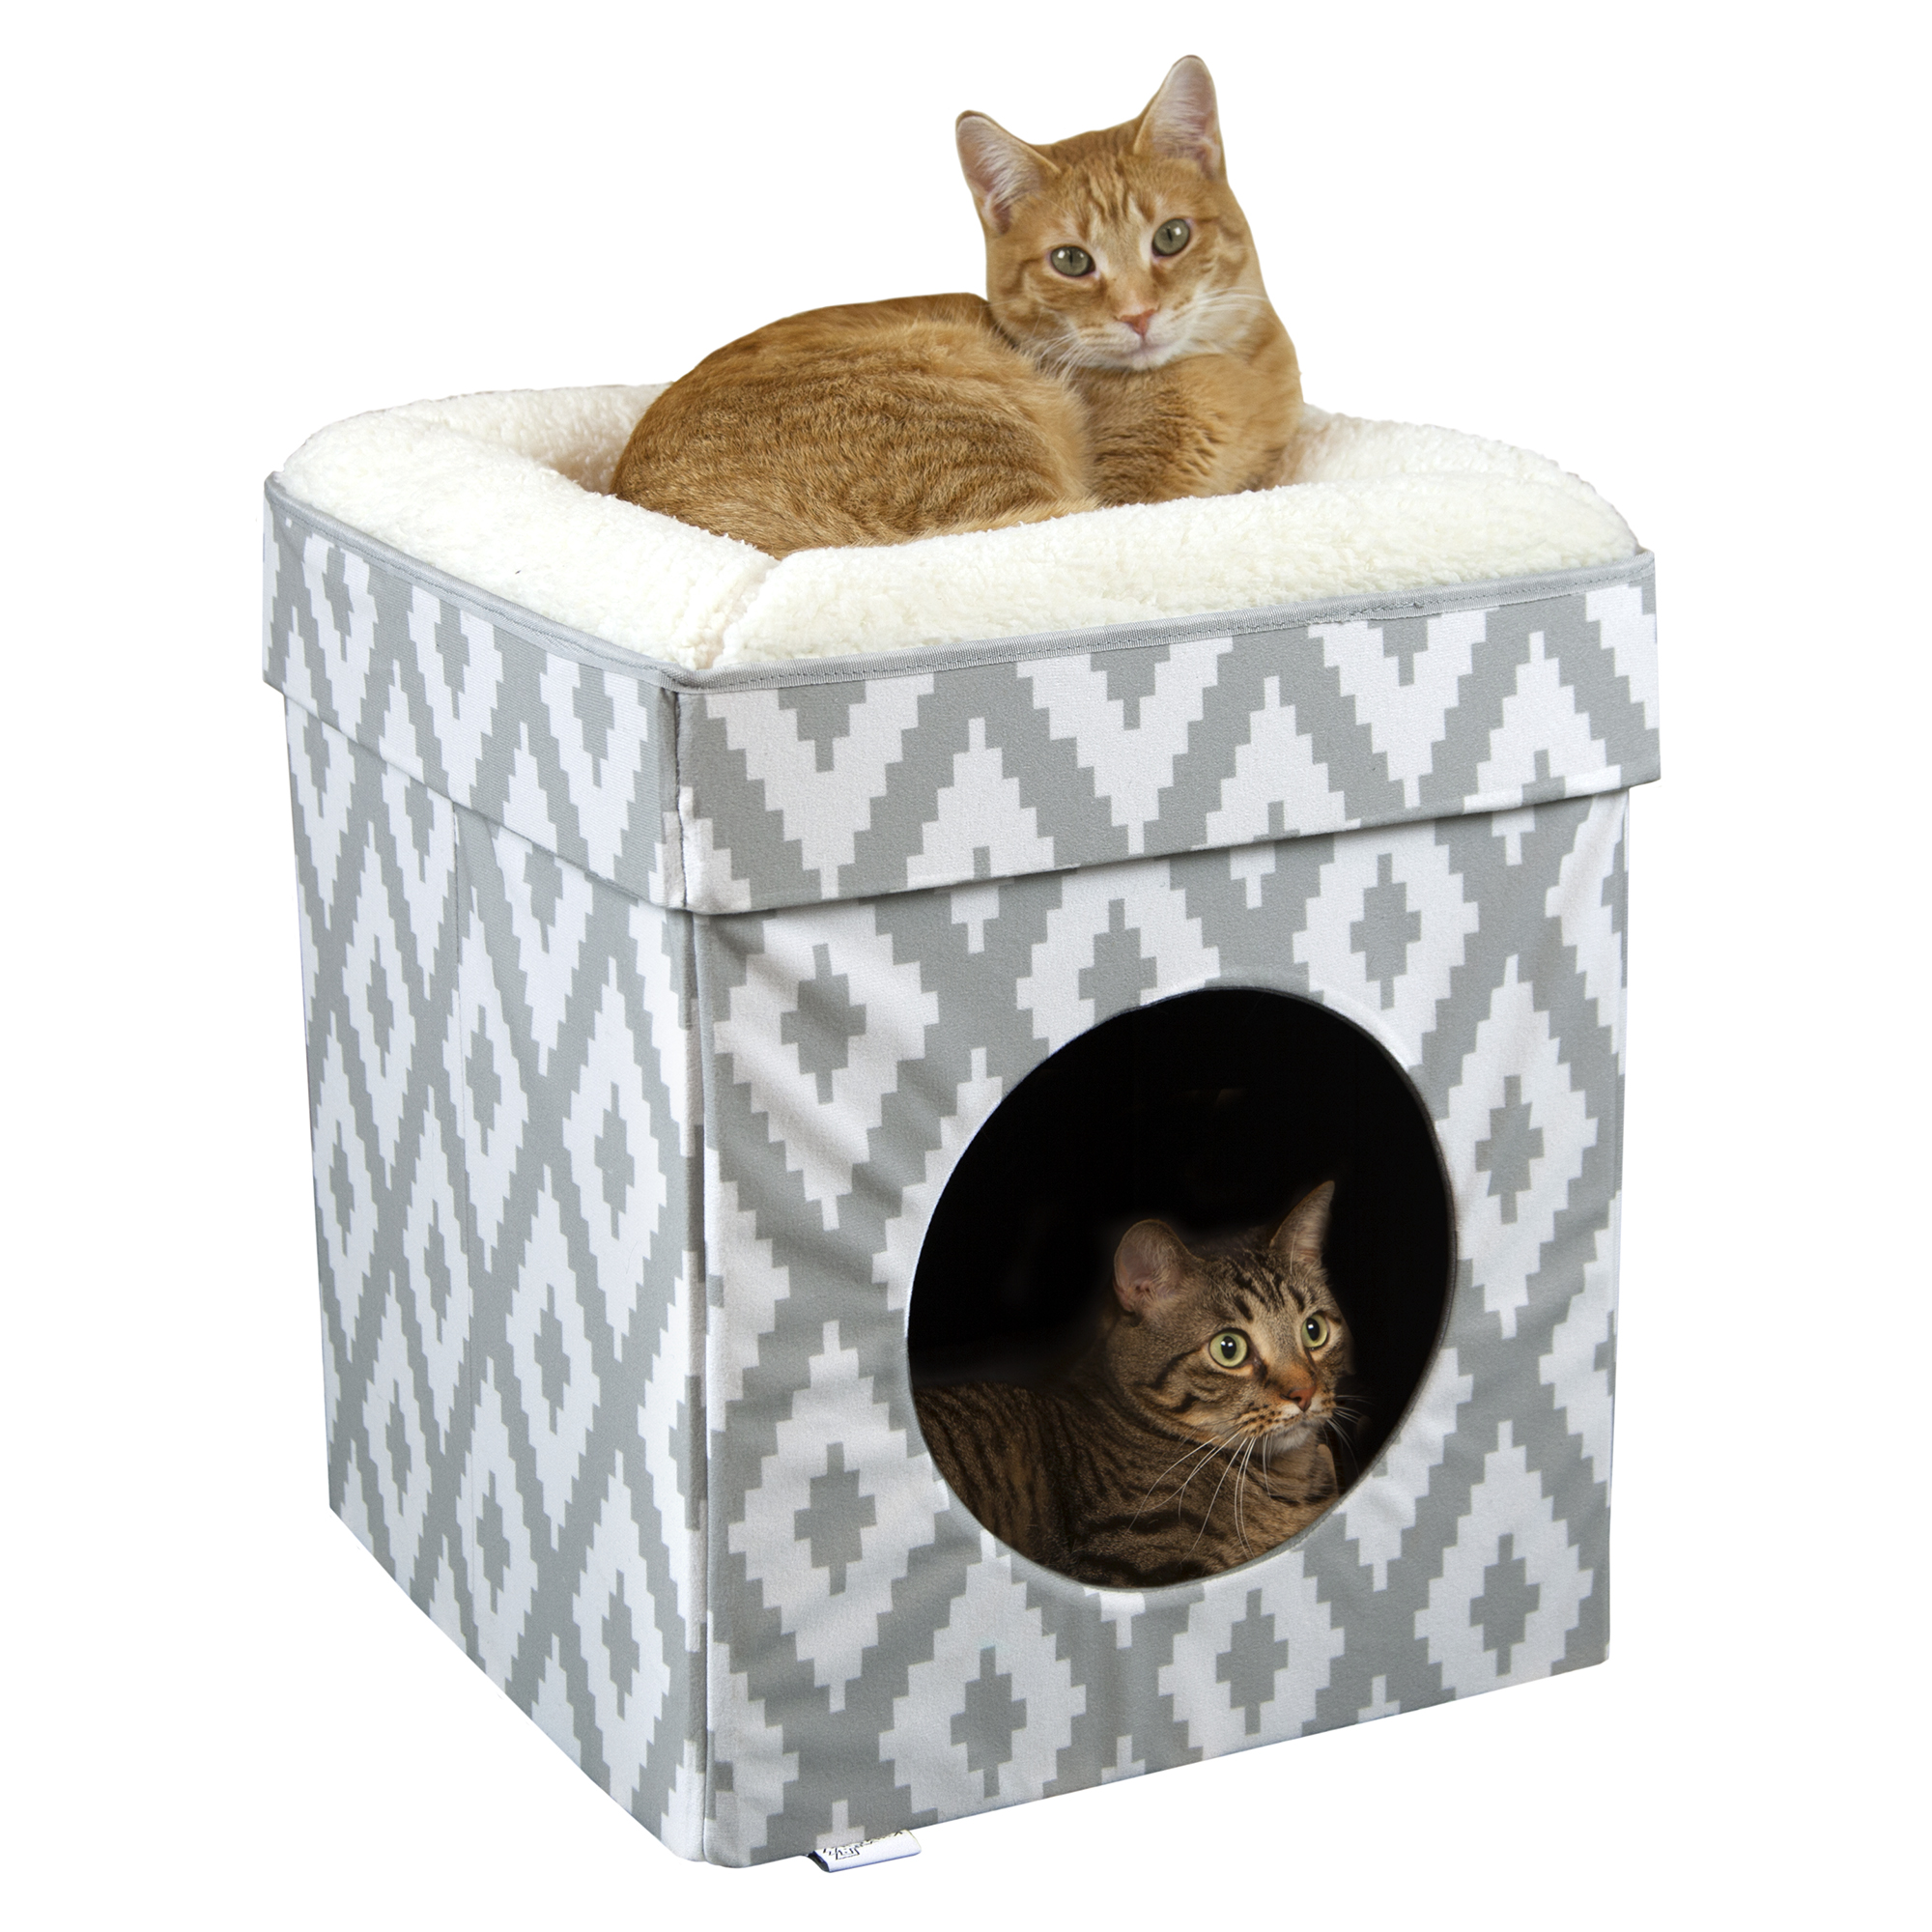 Shop our top cat bed pick!